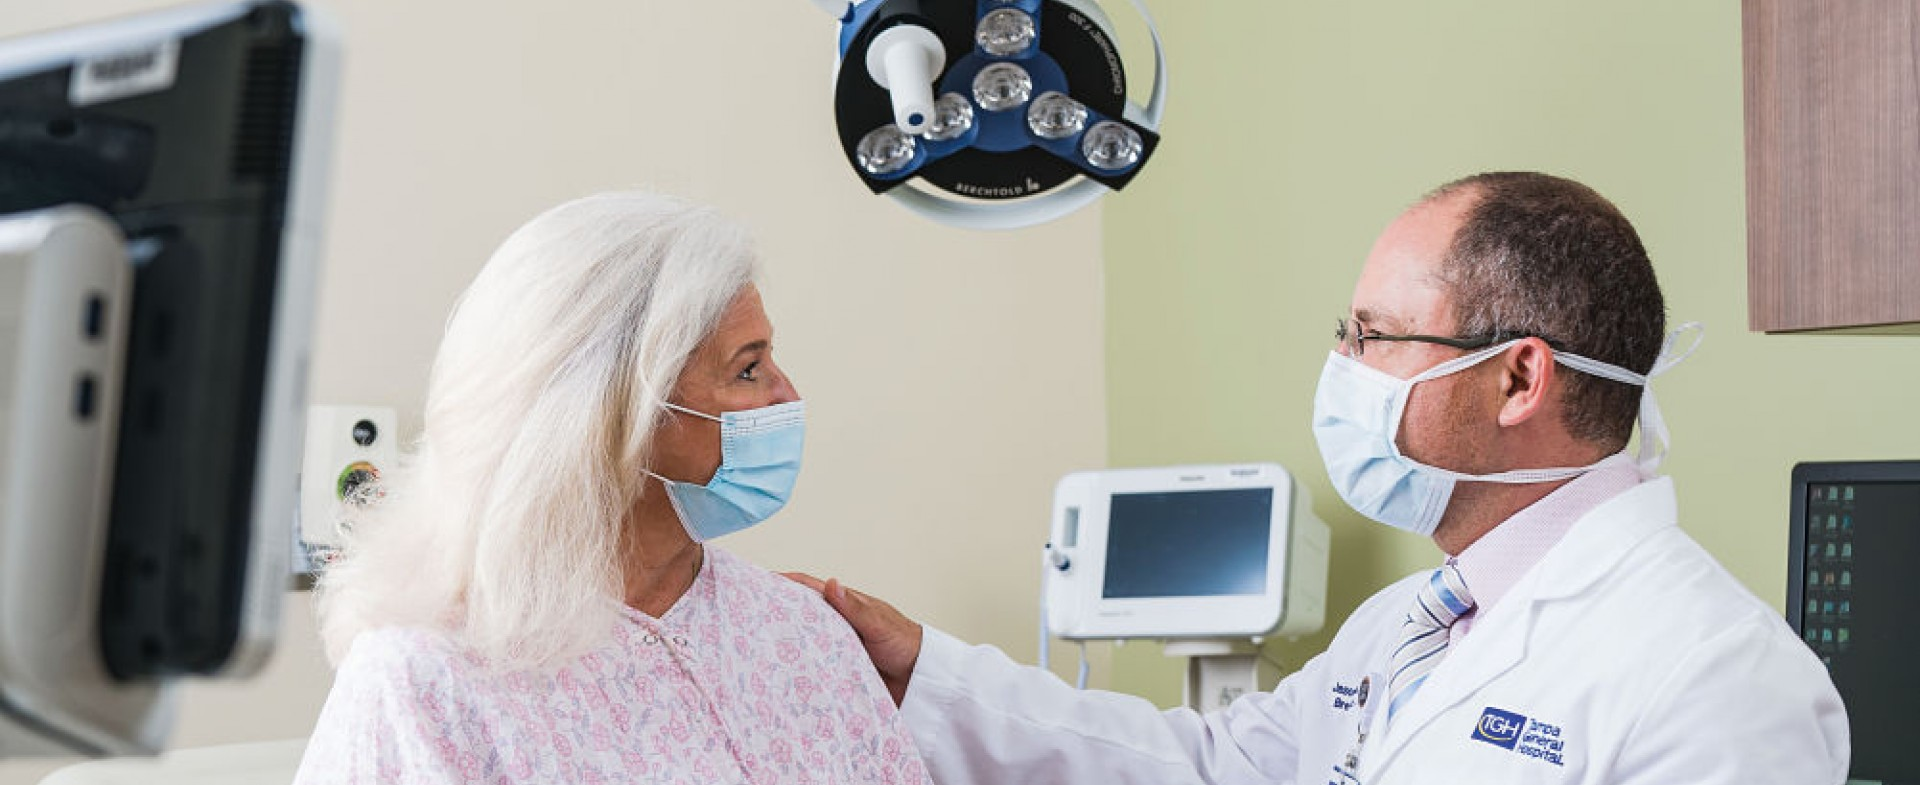 a physician consulting with a patient